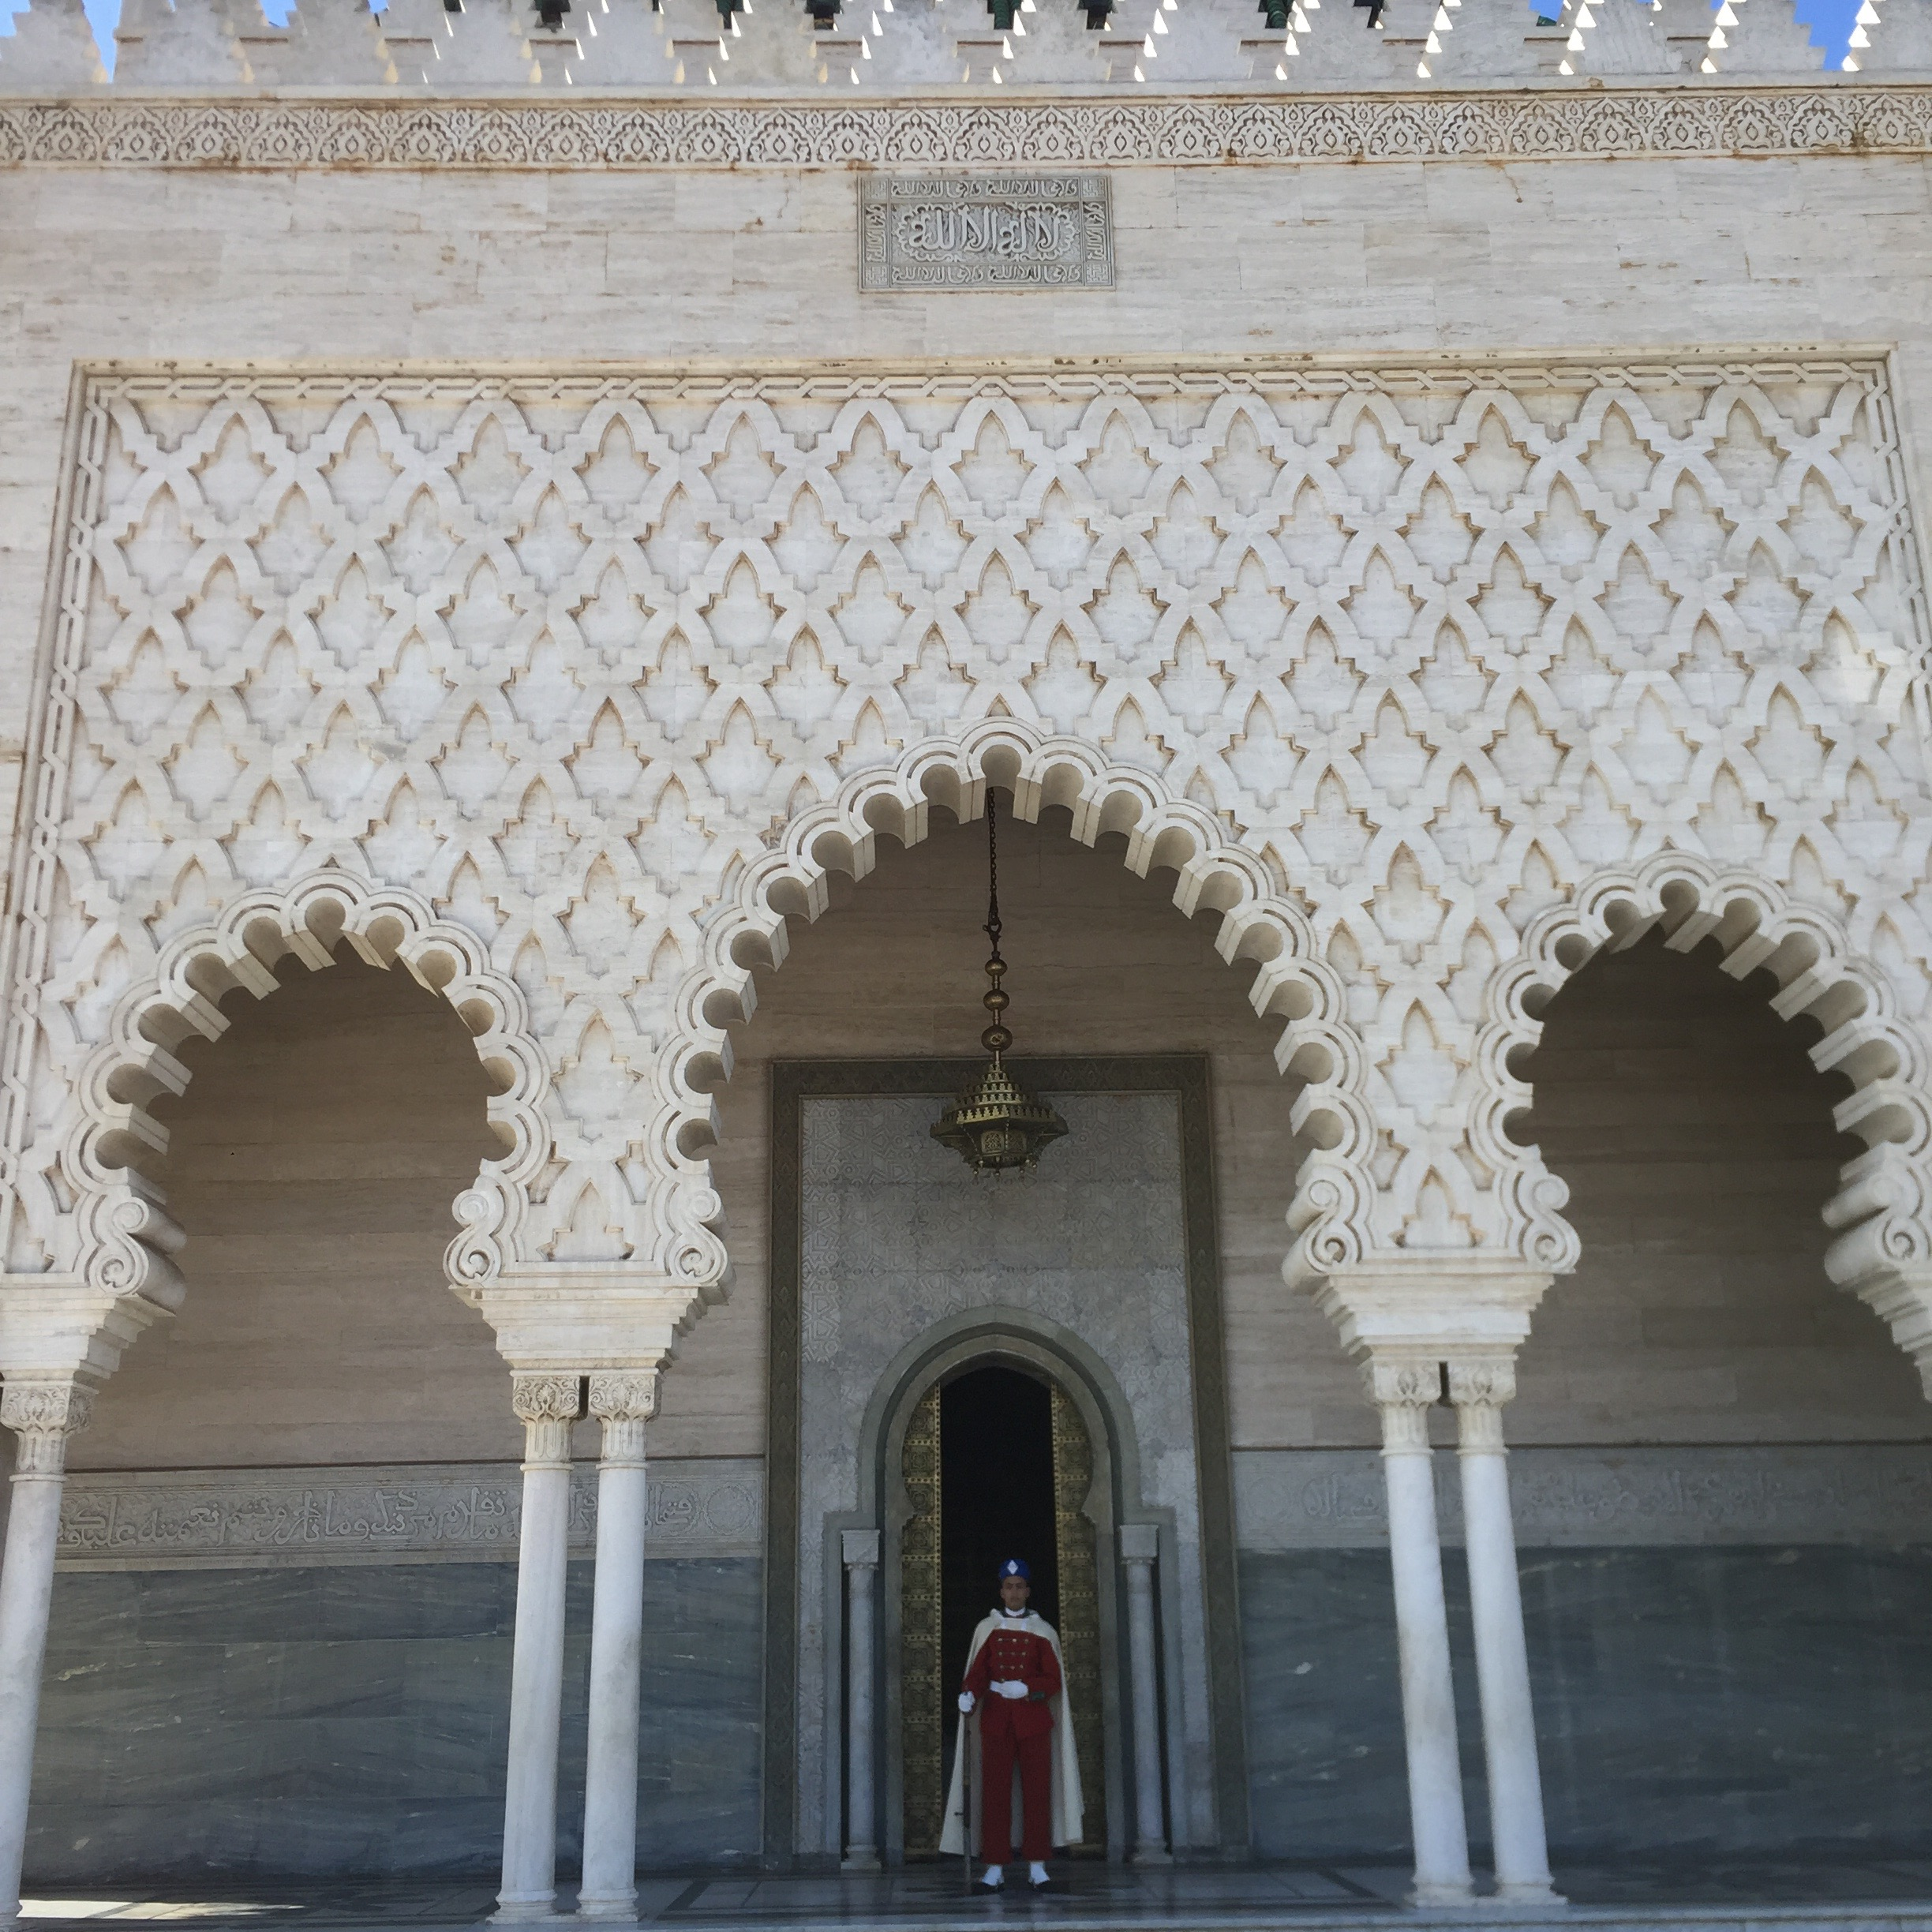 The mausoleum of King Mohammed V, who negotiated independence from France in 1956. Morocco was a French protectorate from 1912 to 1956.